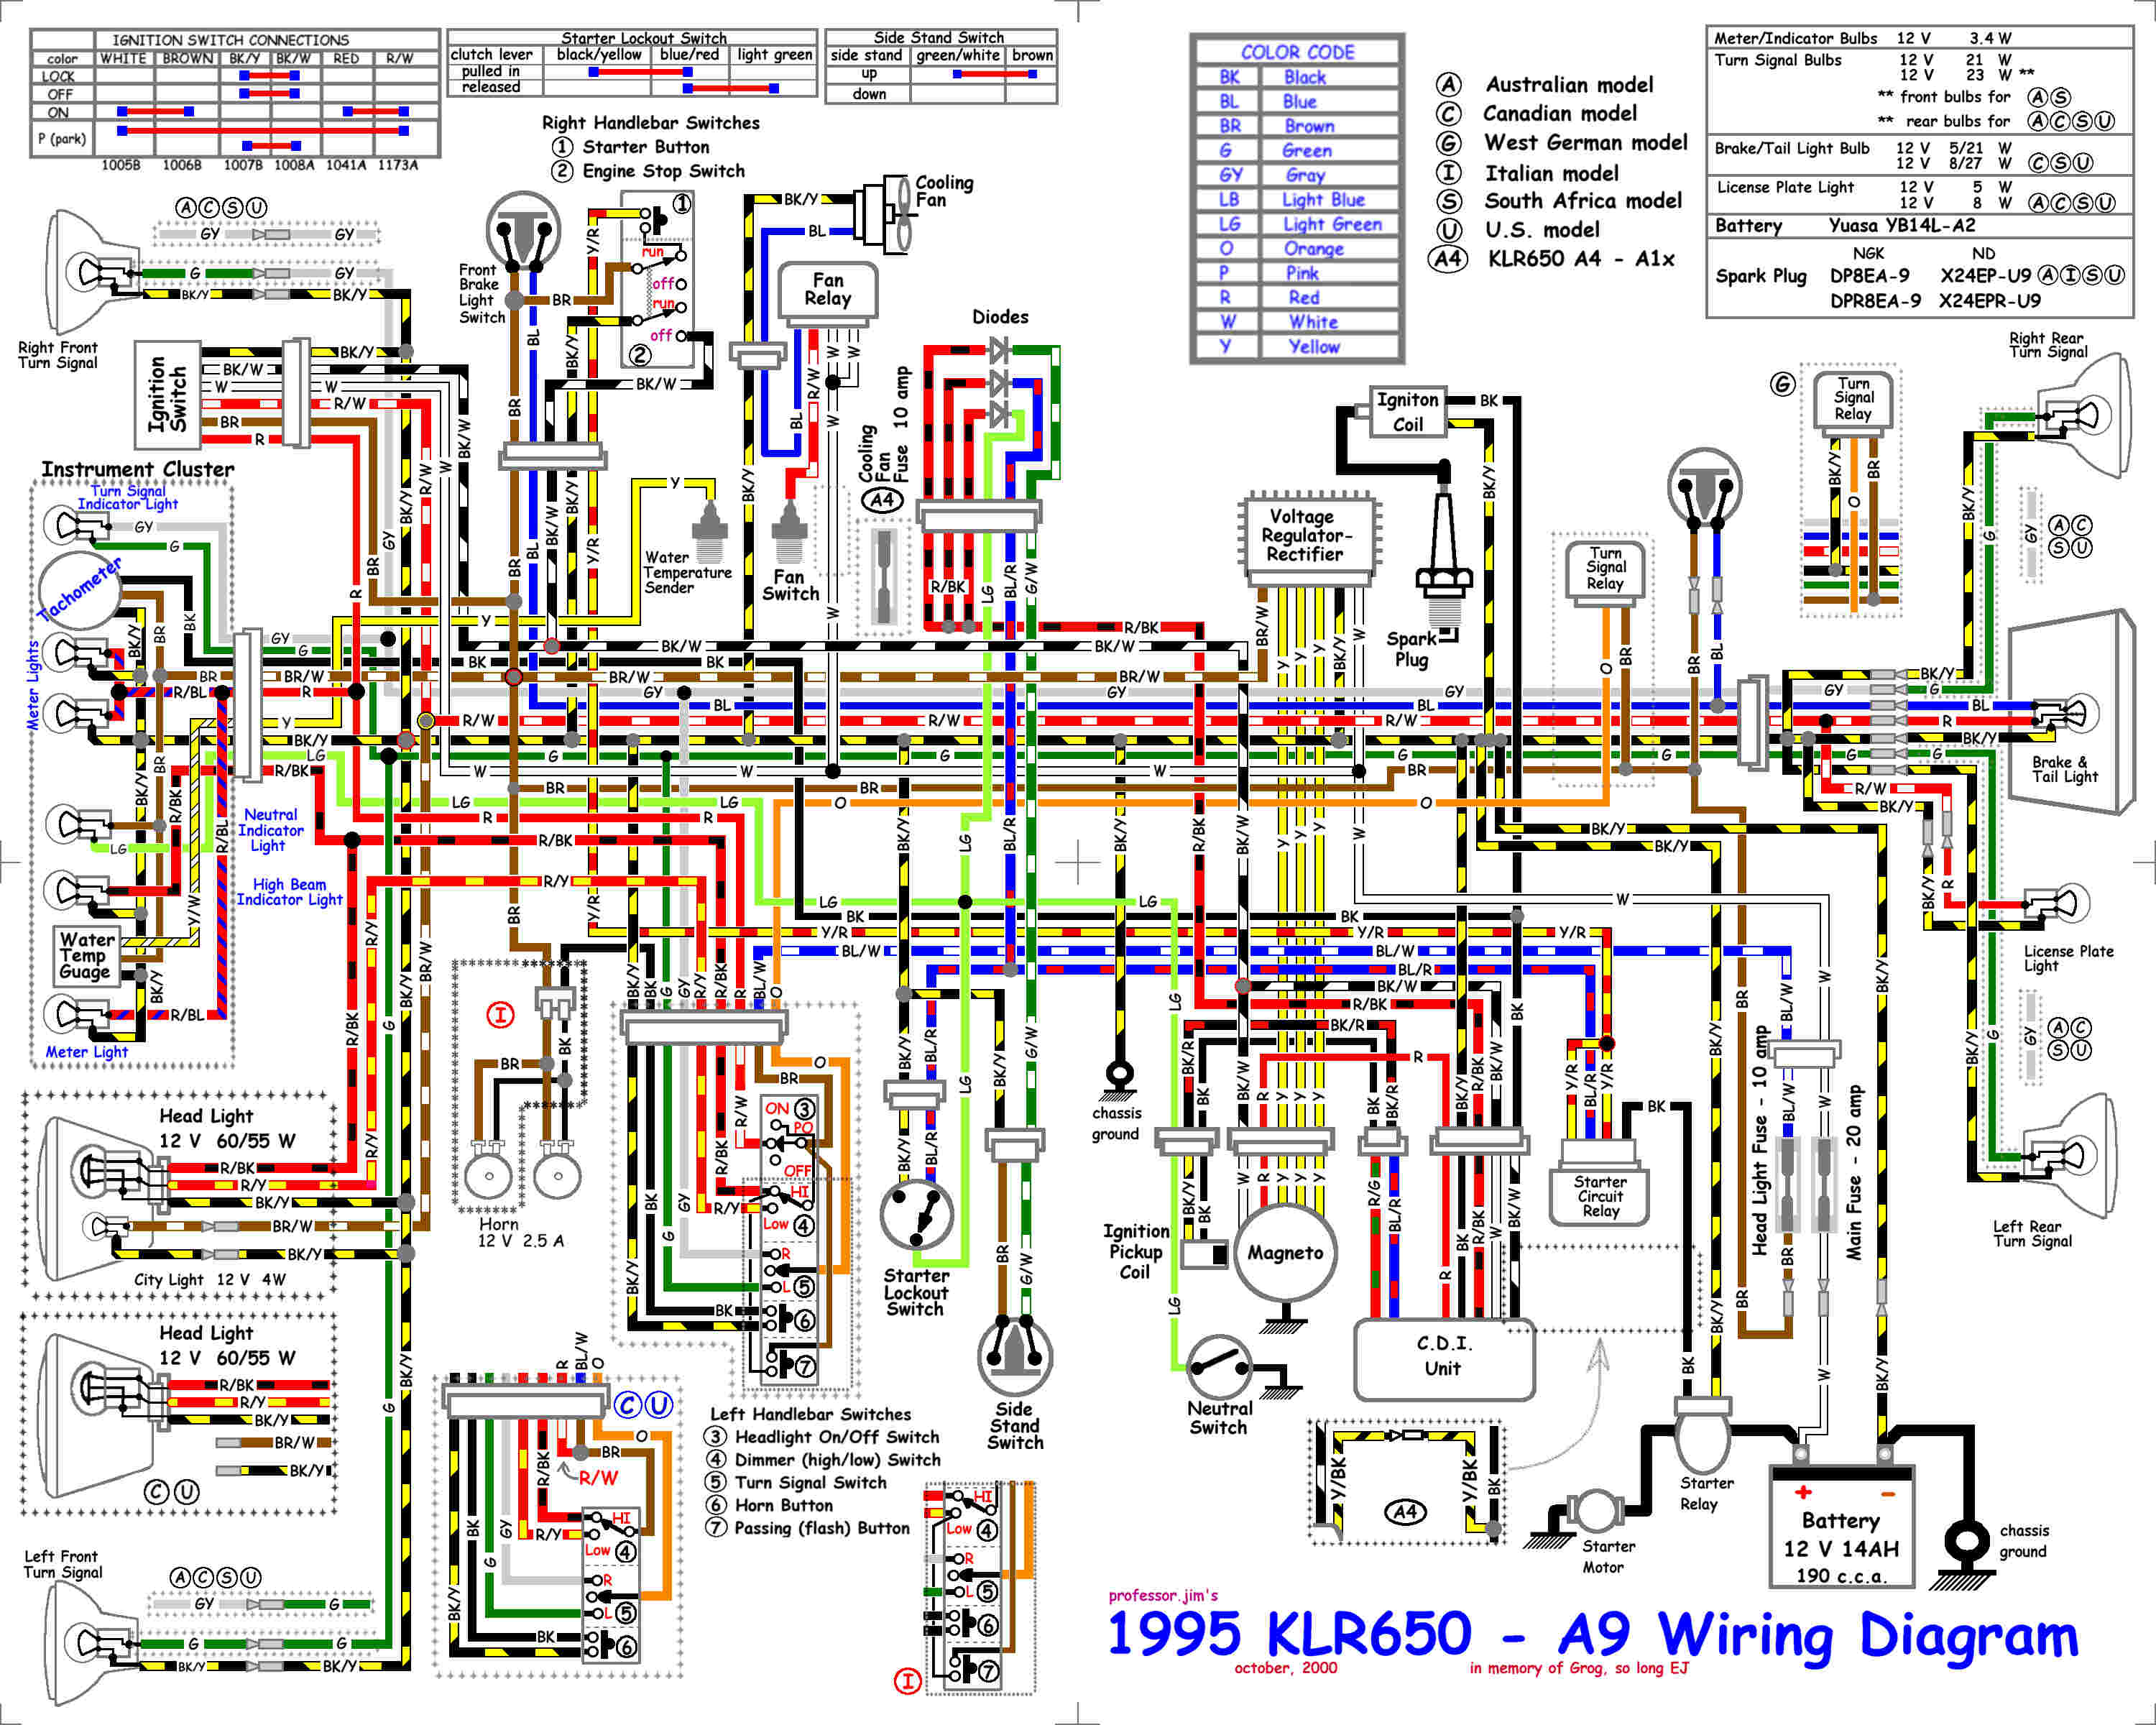 klr 650 wiring diagram images ail lamp fan relay instrument cluster voltage regulator rectifier